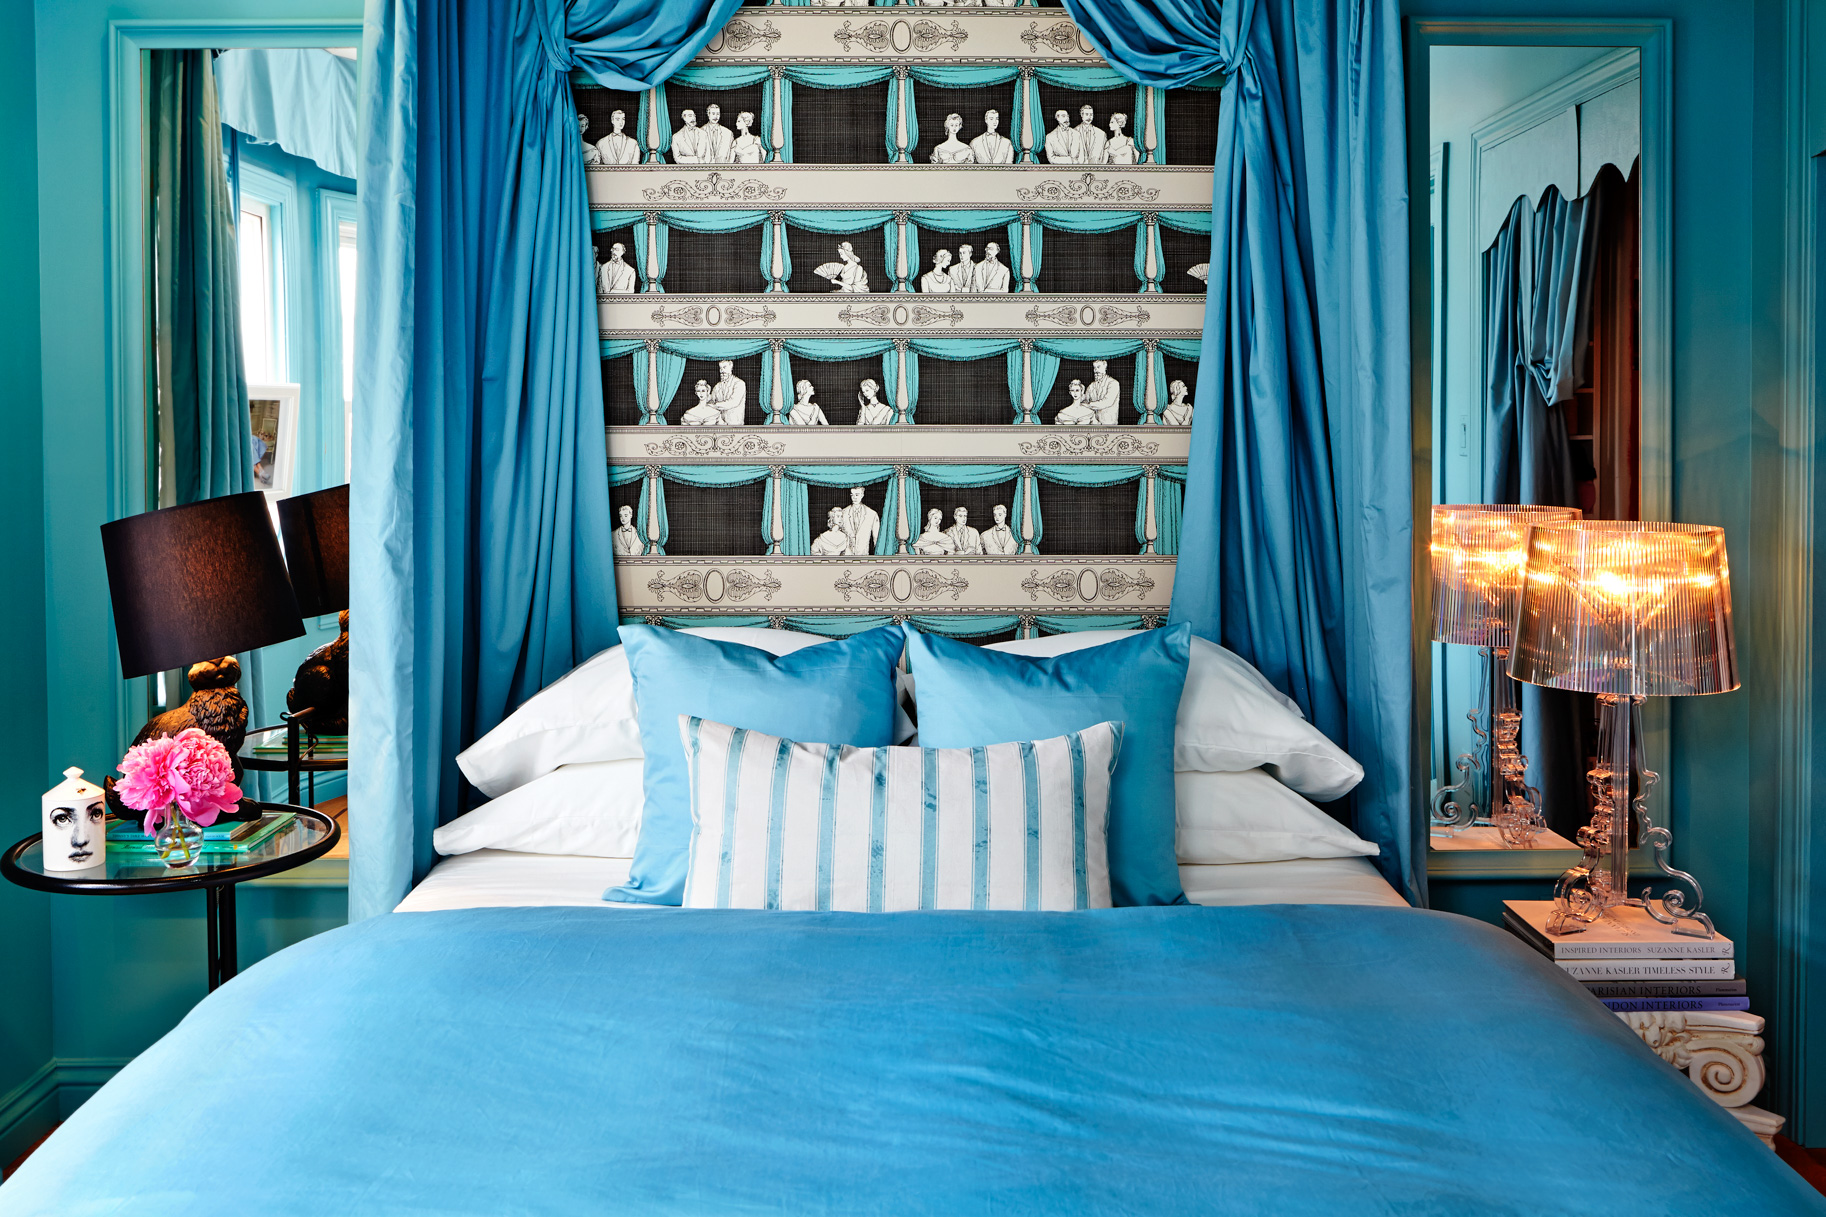 "The ""Bleu"" room draws its inspiration from Marie Antoinette. The canopy bed is paired with fantastical wallpaper by Fornasetti, referencing Marie Antoinette's theatre at Versailles. Custom designed canopy bed, fabric Ikea; ""Il Teatro"" Wallpaper, Fornasetti by Cole and Son; Rabbit Lamp, Moooi; Bourgie Lamp, Ferruccio Laviani for Kartell; Striped pillow custom, fabric Brunschwig & Fils."